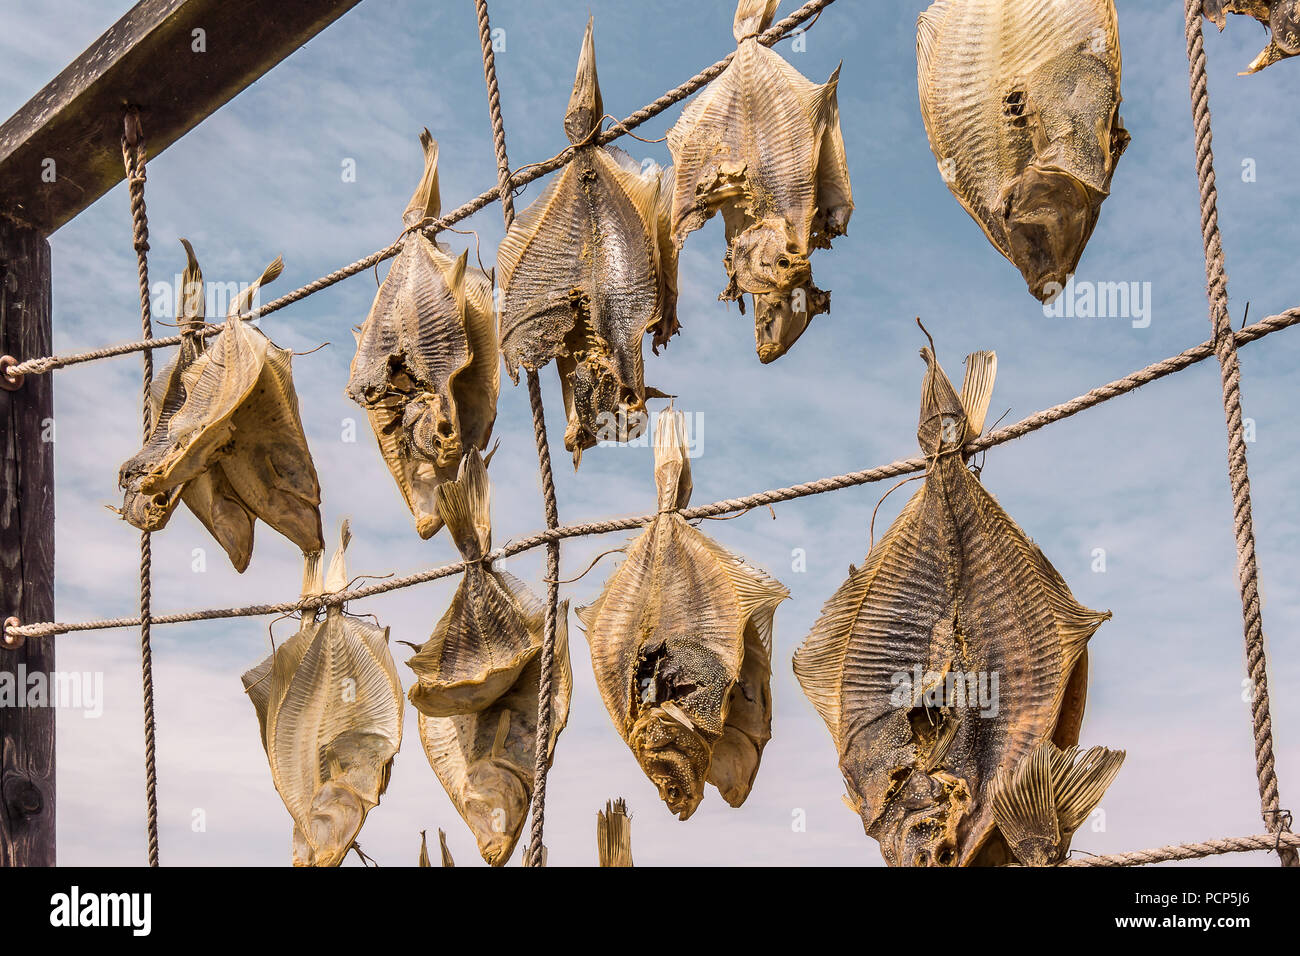 Flatfish, hanging on ropes for drying, an exellent seafood, Liseleje, Denmark, Juli 30, 2018 - Stock Image